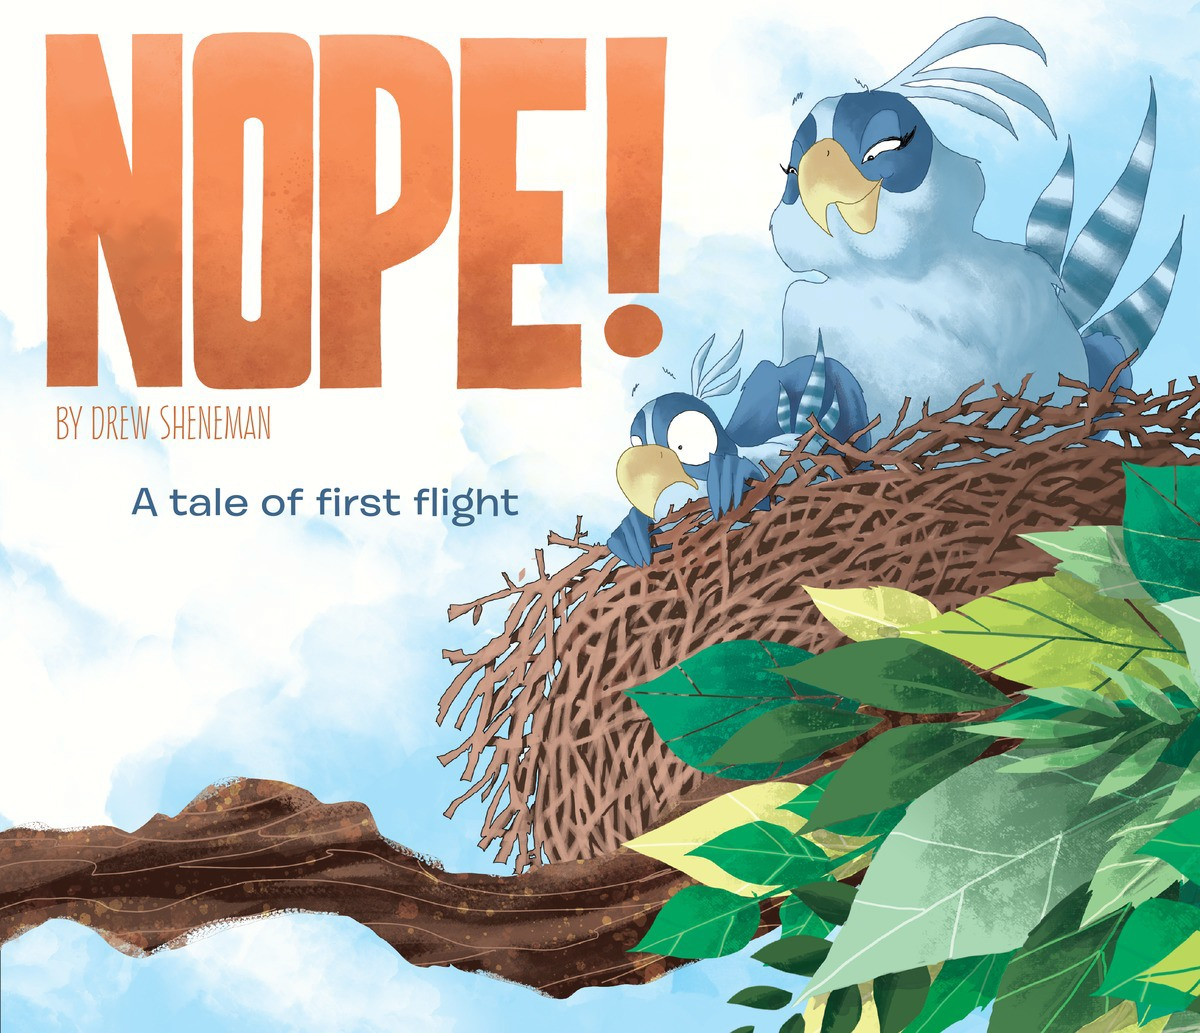 Nope (A tale of first flight)